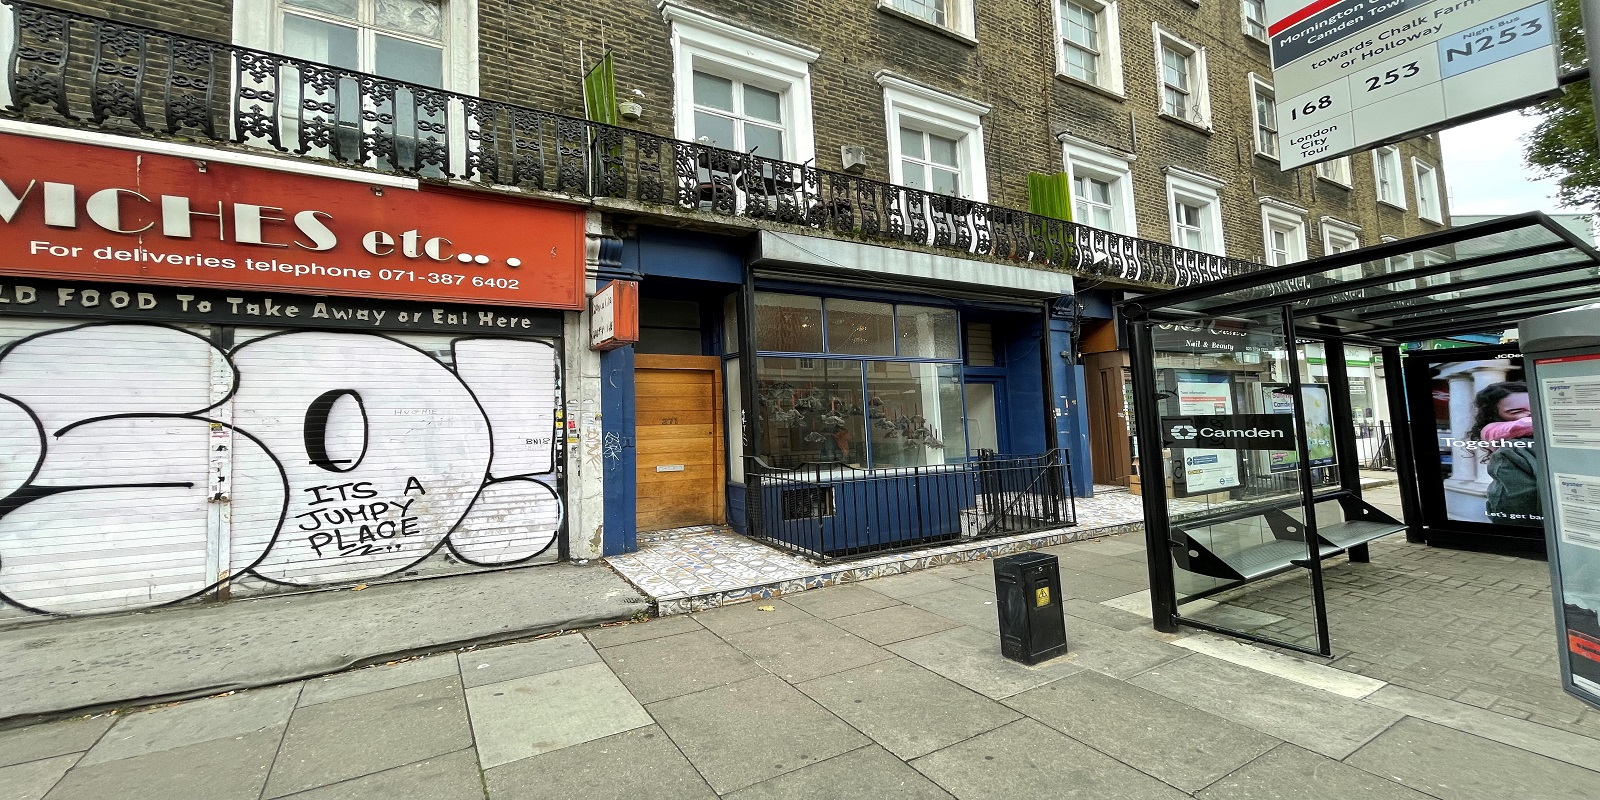 HIGH STREET OFFICE / SHOP TO LET